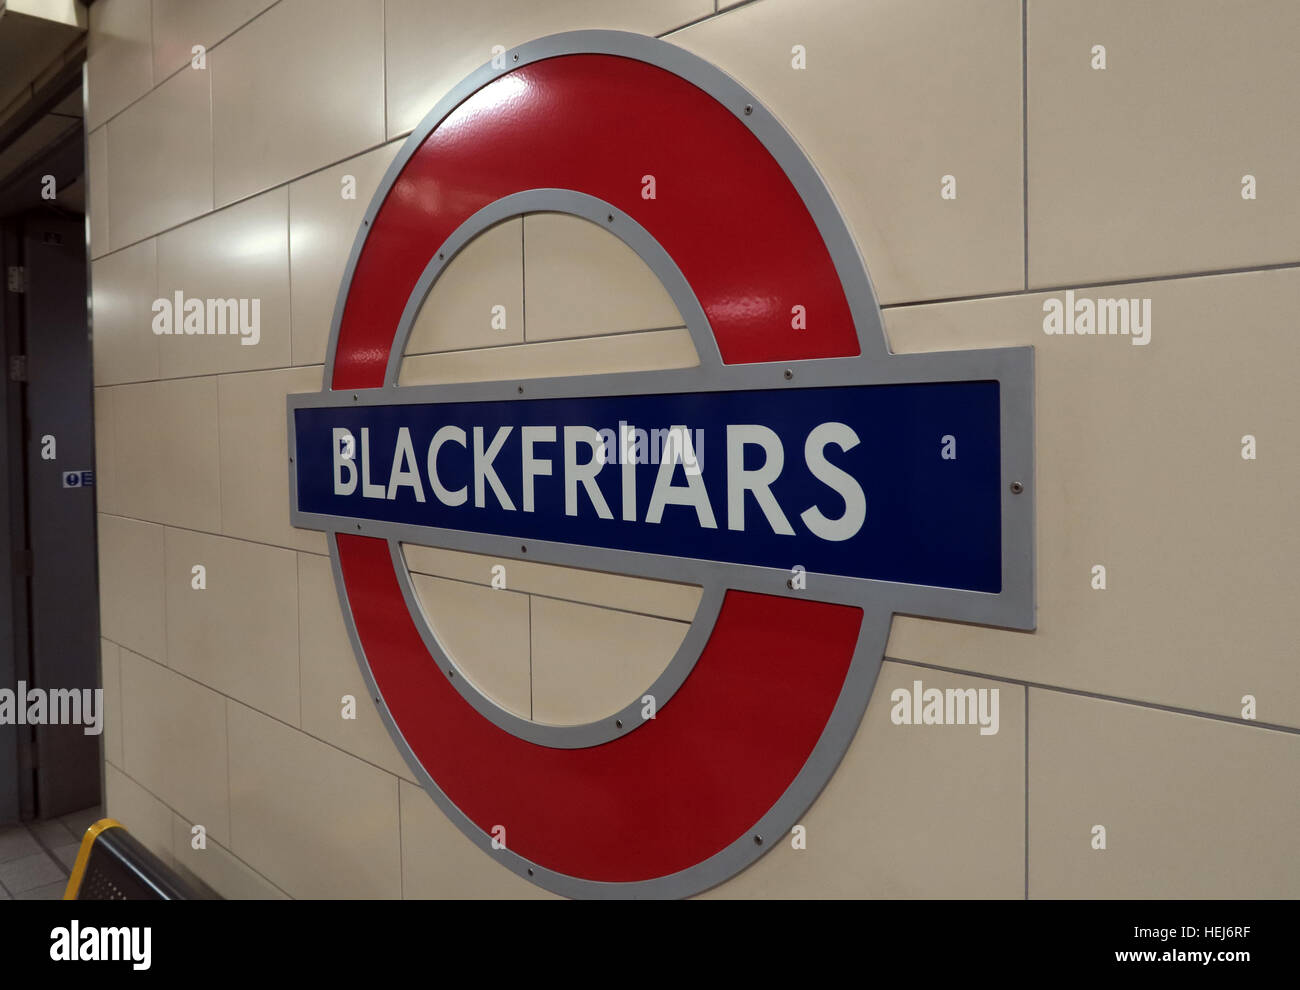 Blackfriars Tube Station, London City Centre,England,UK - Stock Image